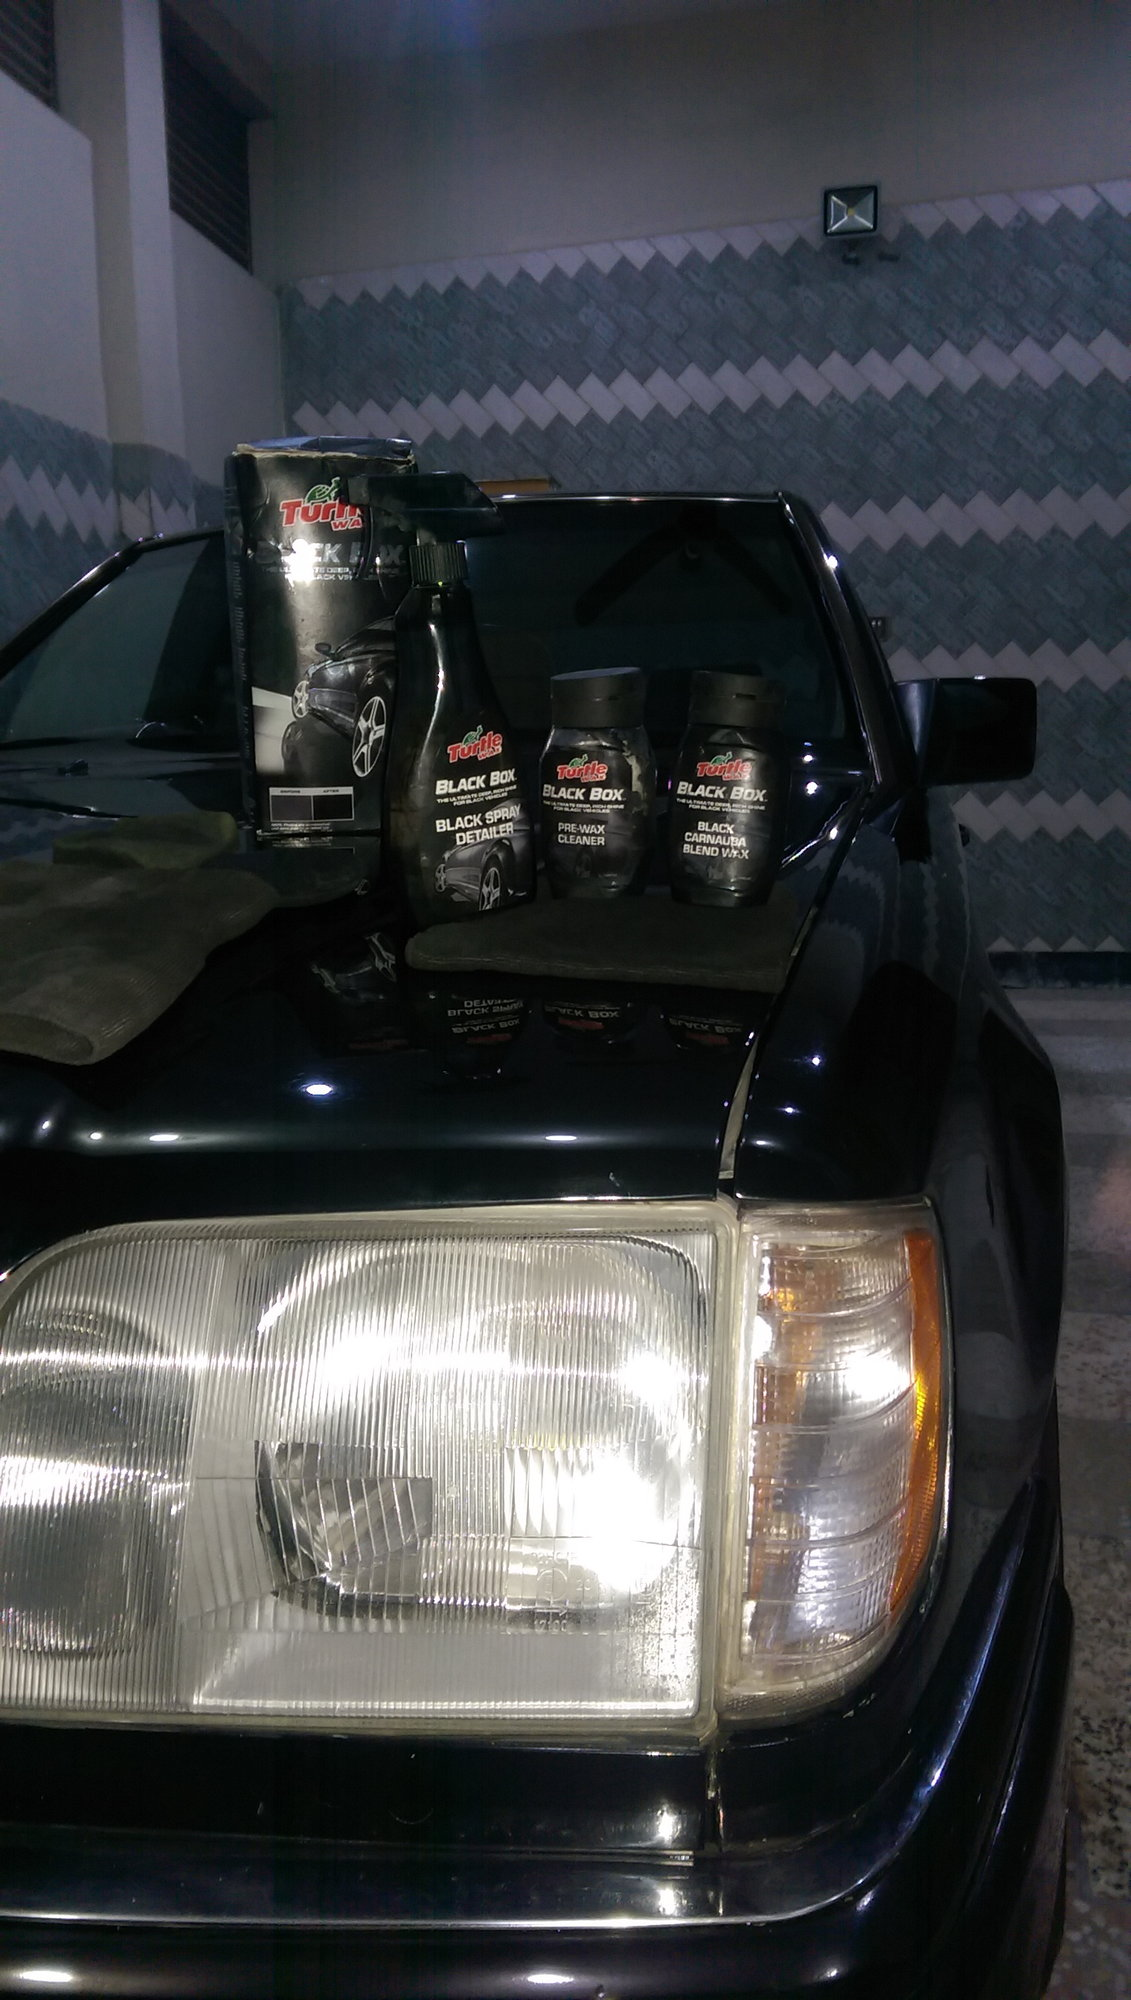 W124 1990 Restoration Project Forums Mercedes Fuse Box The Best Wax I Ever Used Is This Oneturtle Black Its Bit Time Consuming But Results Were Amazingin A Package It Had 3 Different Products